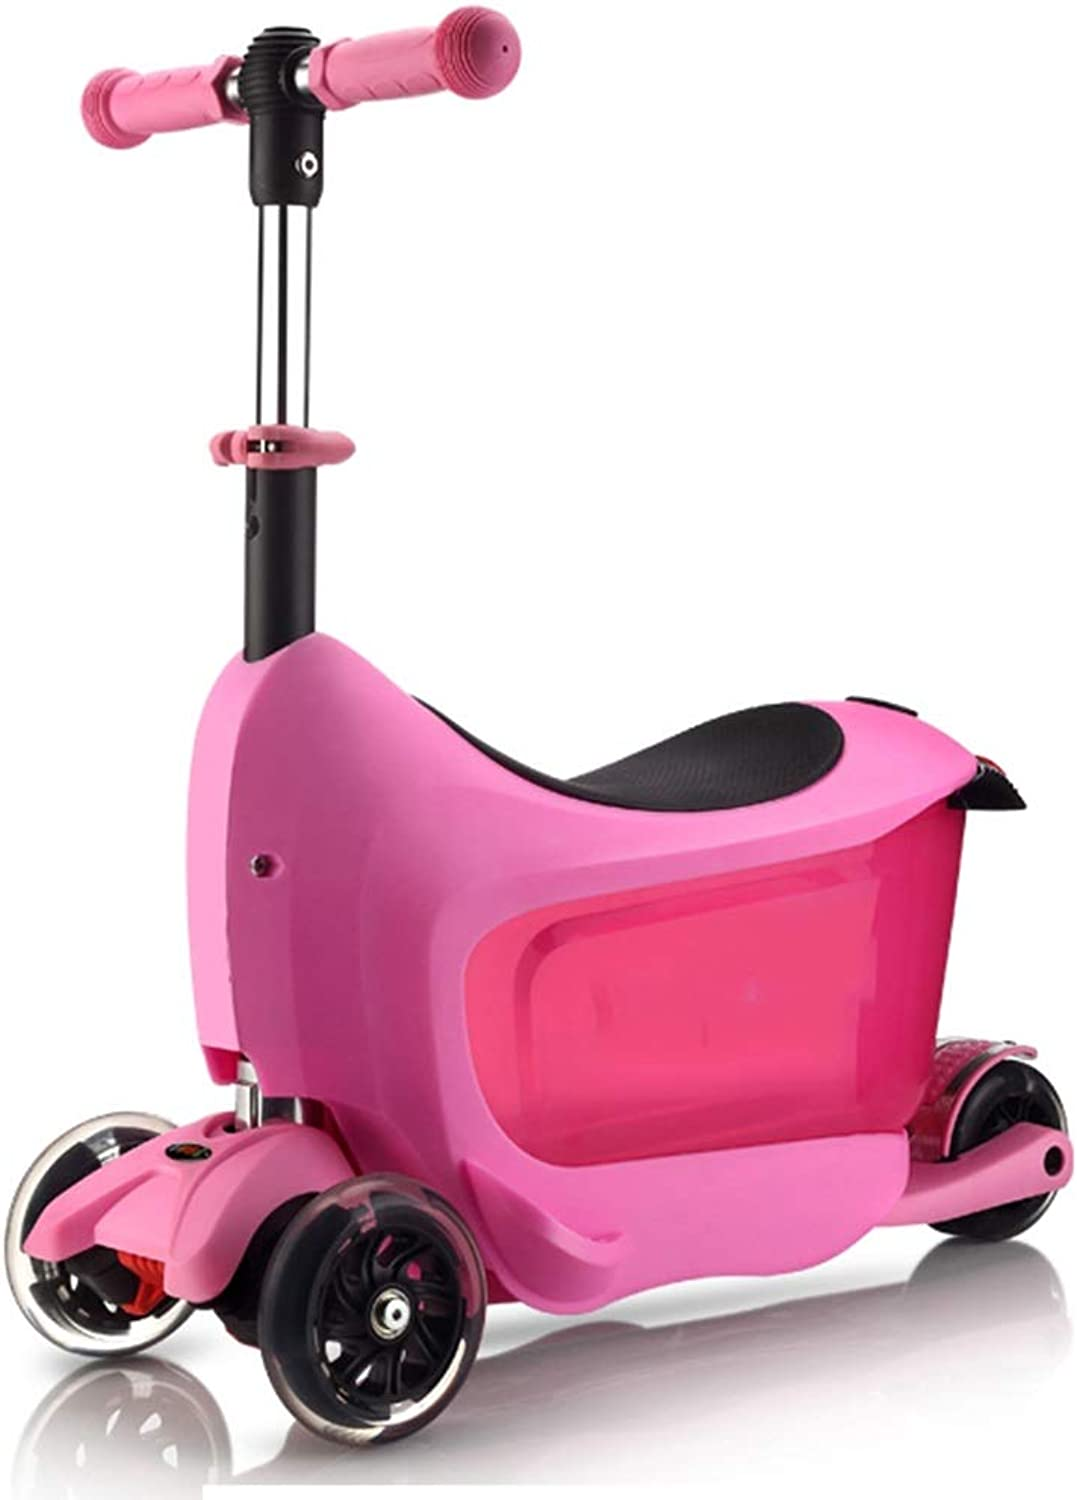 YUMEIGE Kick Scooters Kick Scooter City ScootersFolding Scooter Adjustable for 1-6 Years Old Boys Girls Birthday Gift (color   Pink)